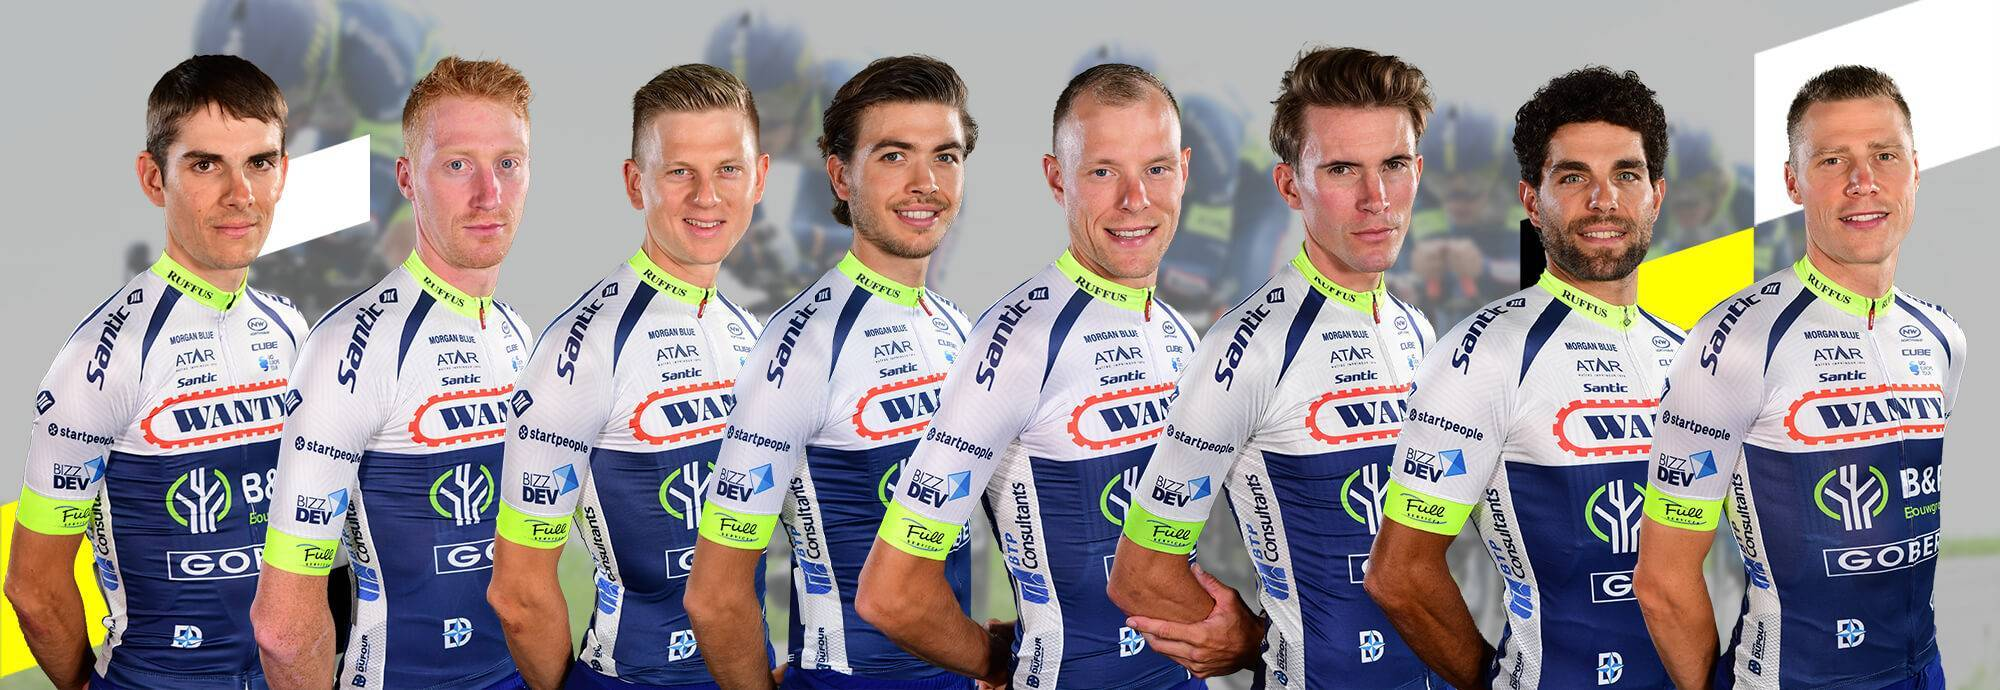 Header: WANTY - GOBERT CYCLING TEAM